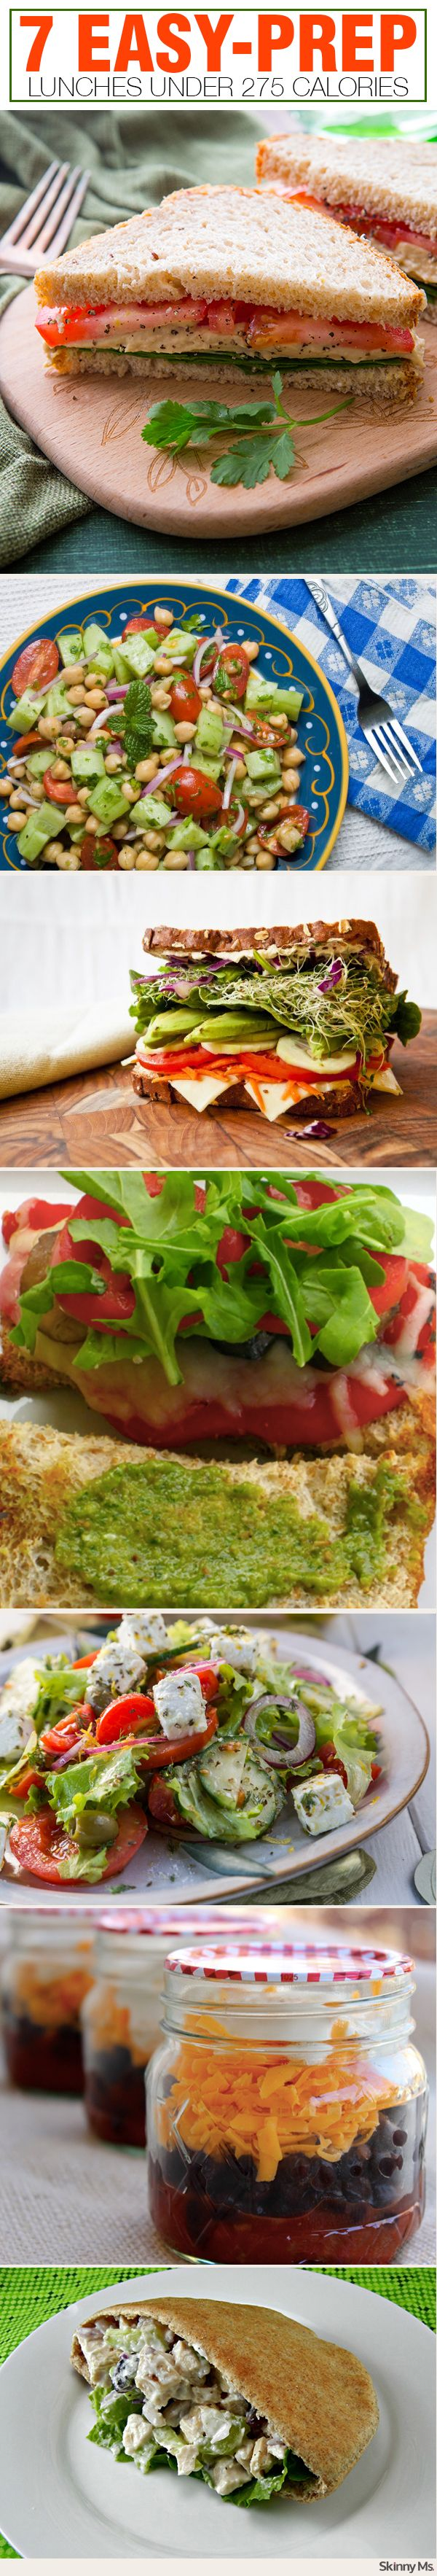 7 Easy-Prep Lunches Under 275 Calories